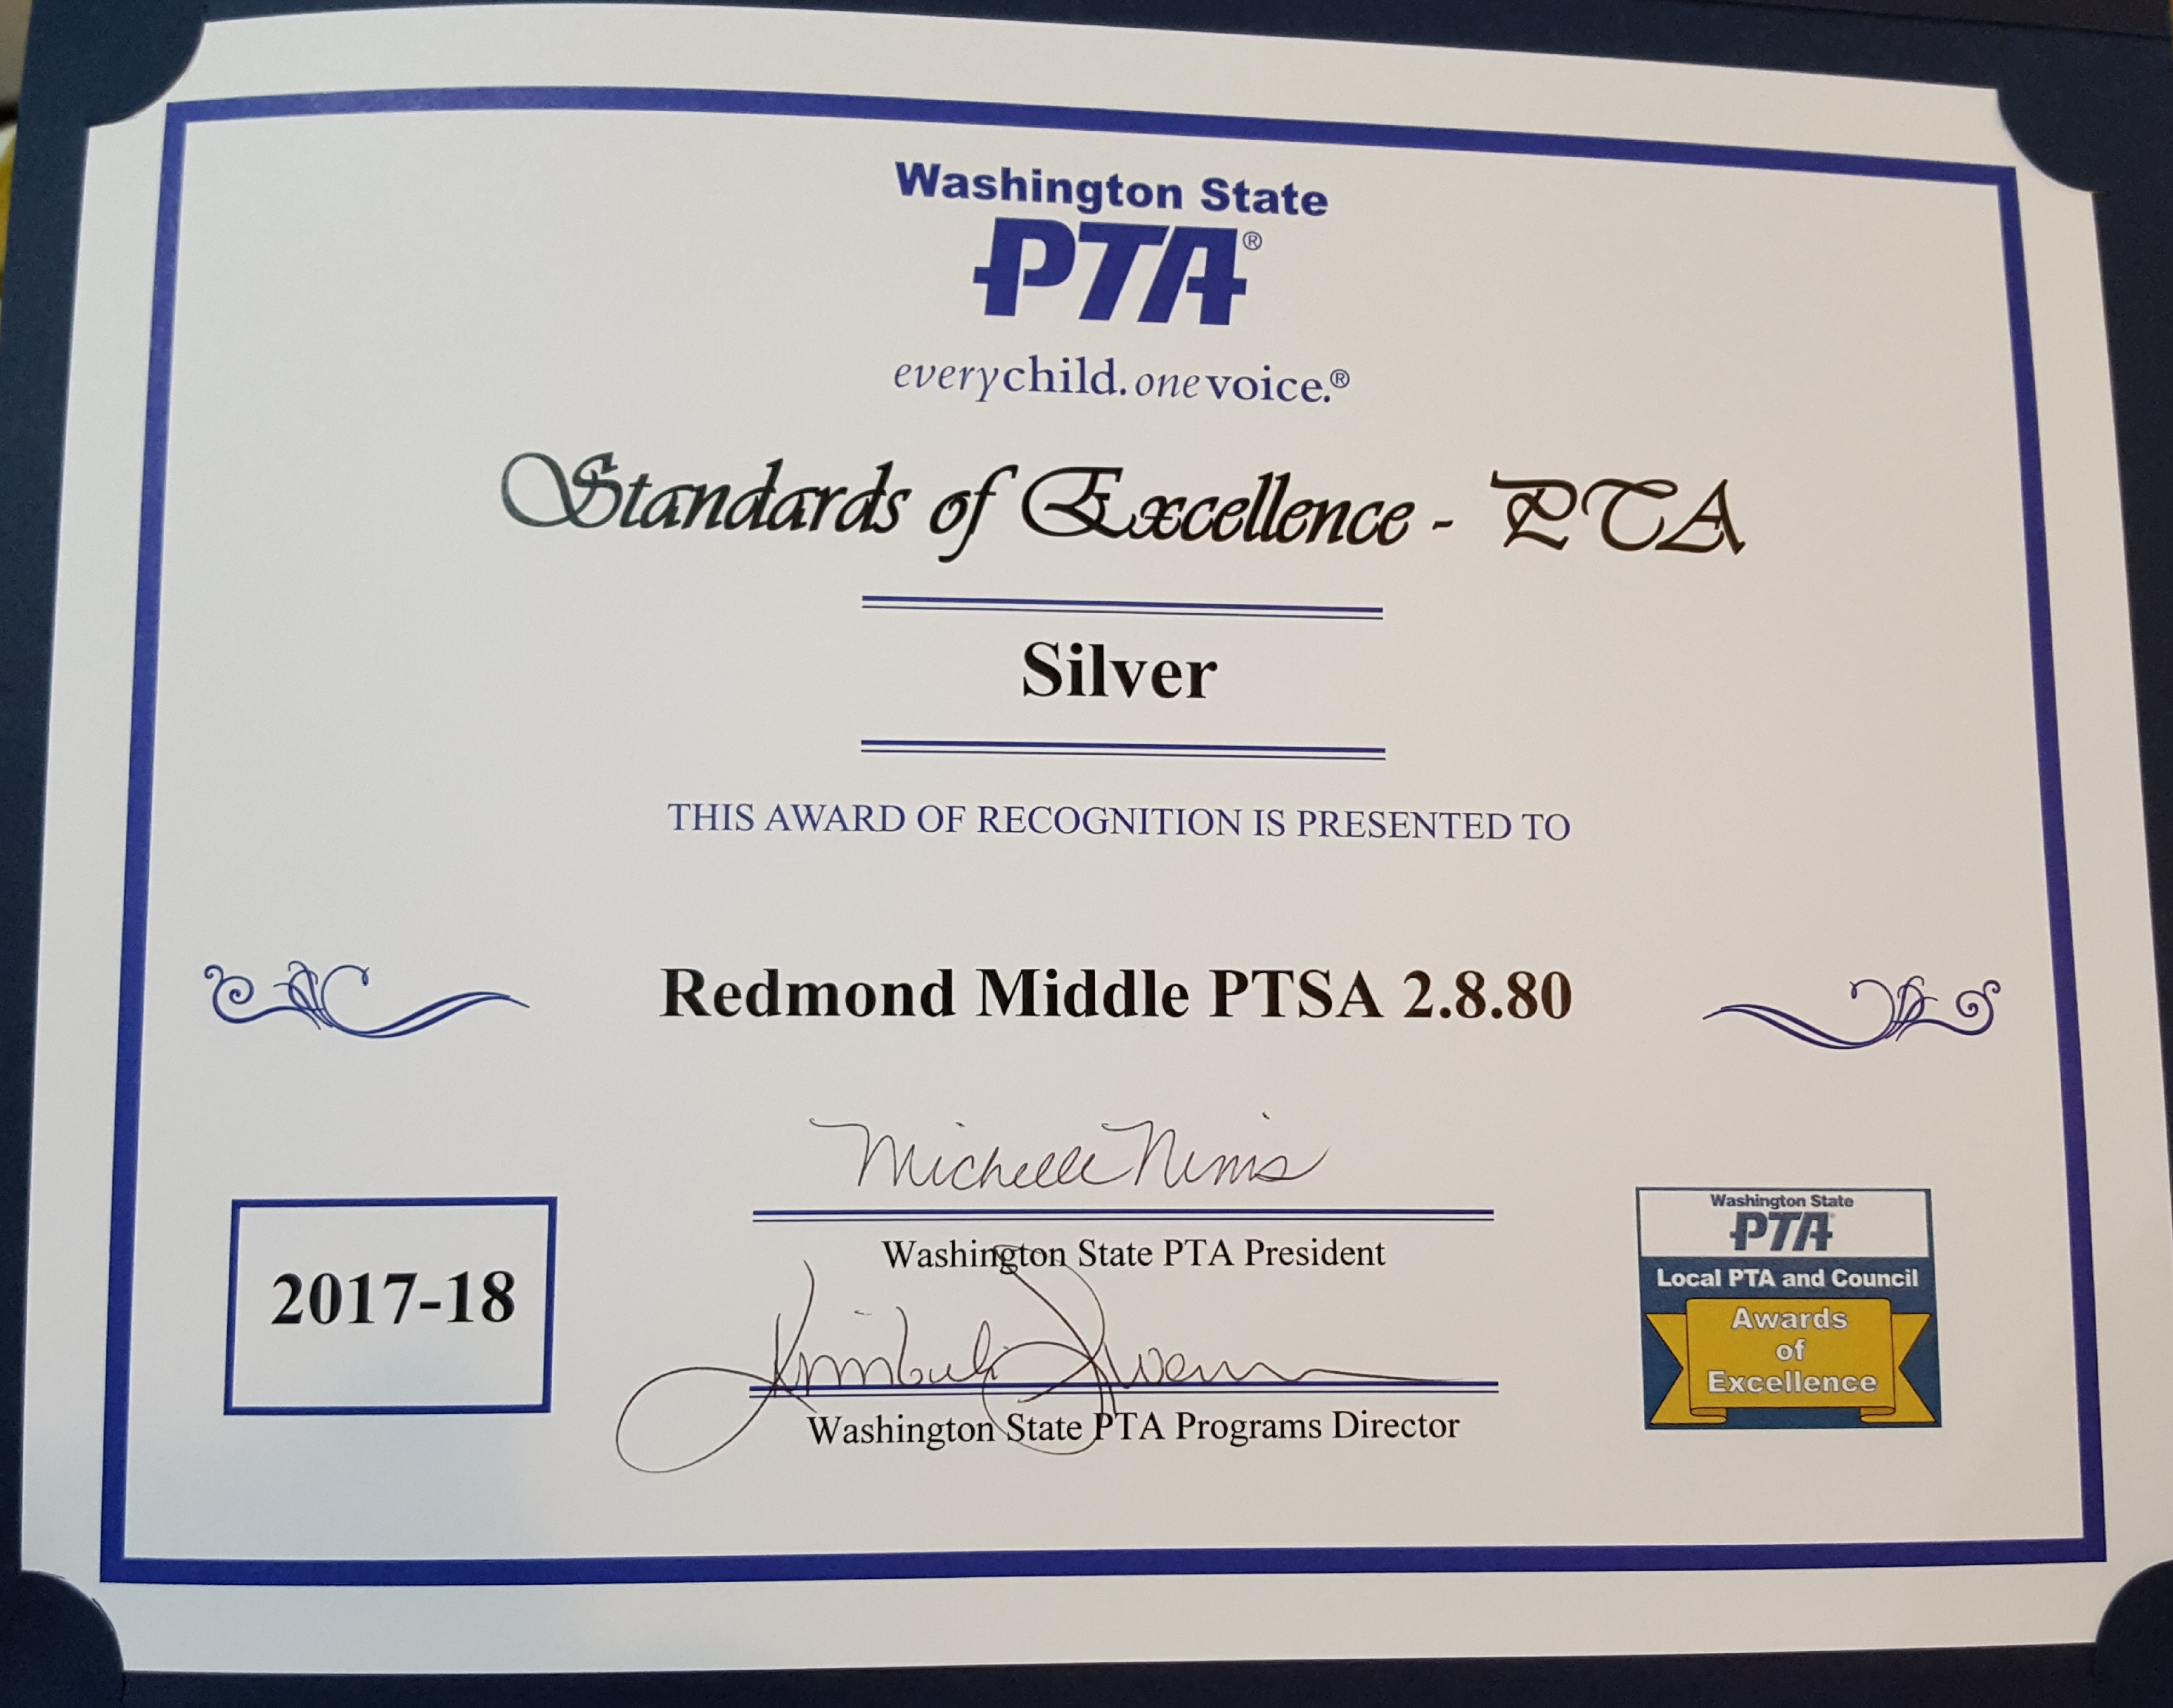 WA State PTA Standards of Excellence Silver Award 2017-18